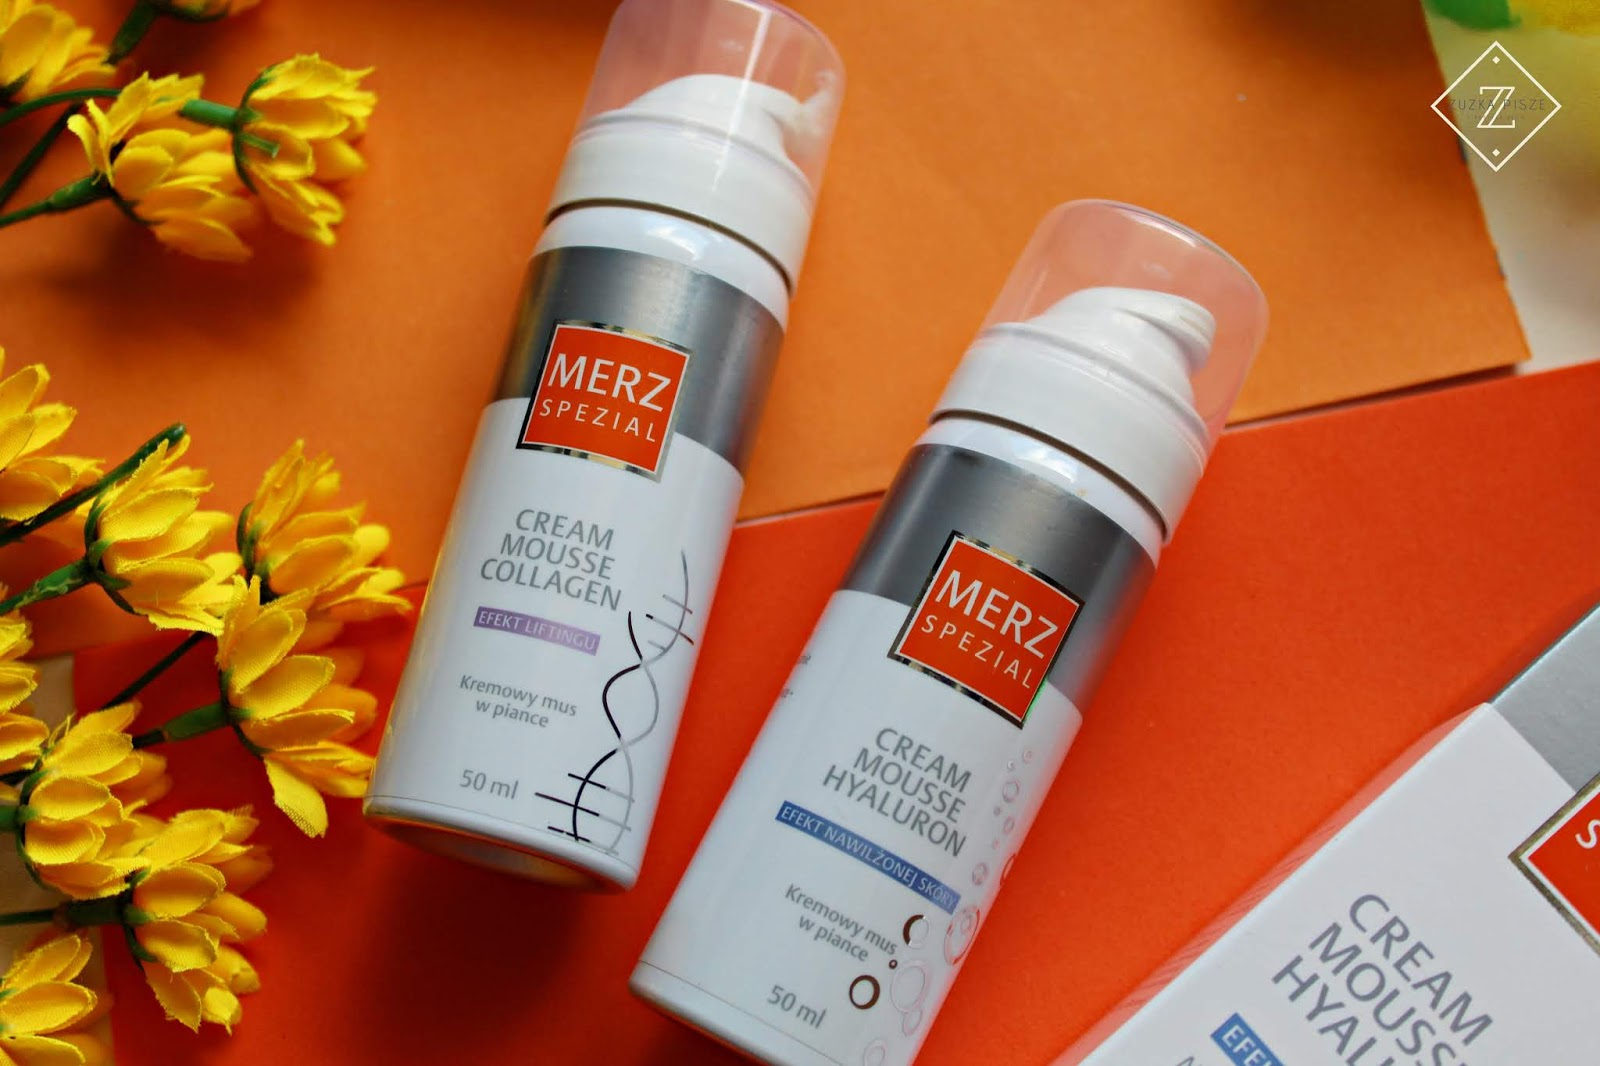 MERZ SPEZIAL Cream Mousse Collagen & Hyaluron